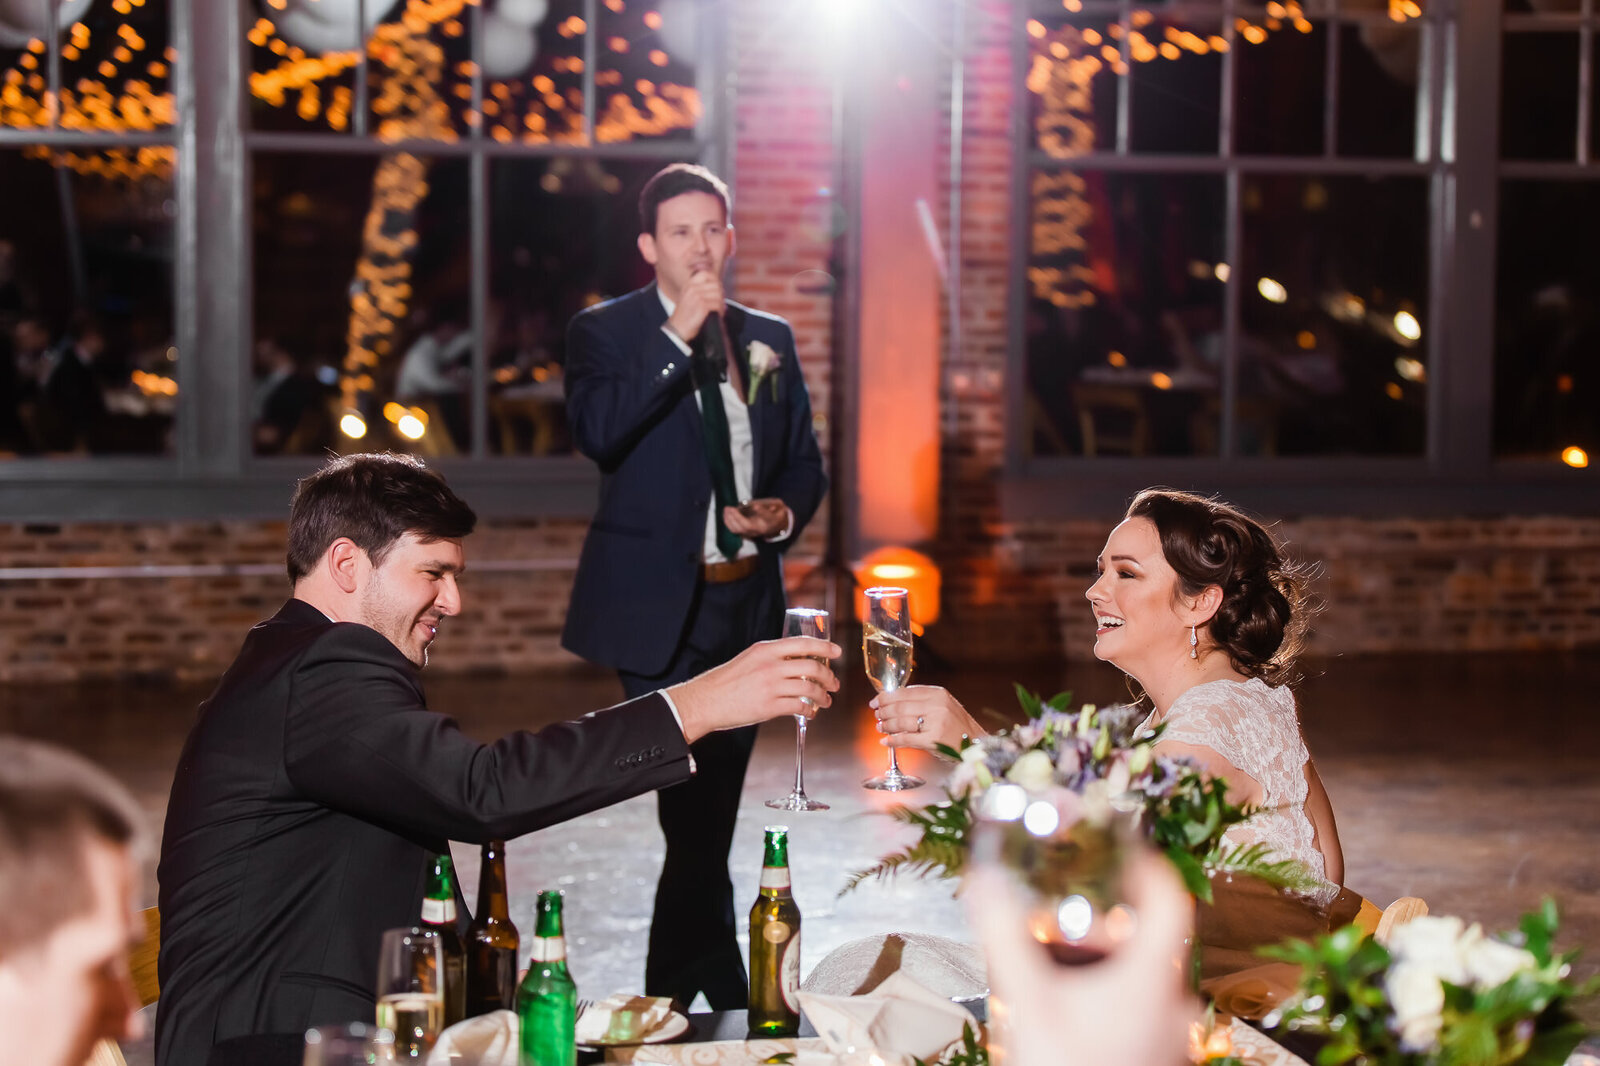 Bride and groom clinking glasses during toasts at their wedding reception at NEO on Locust in STL